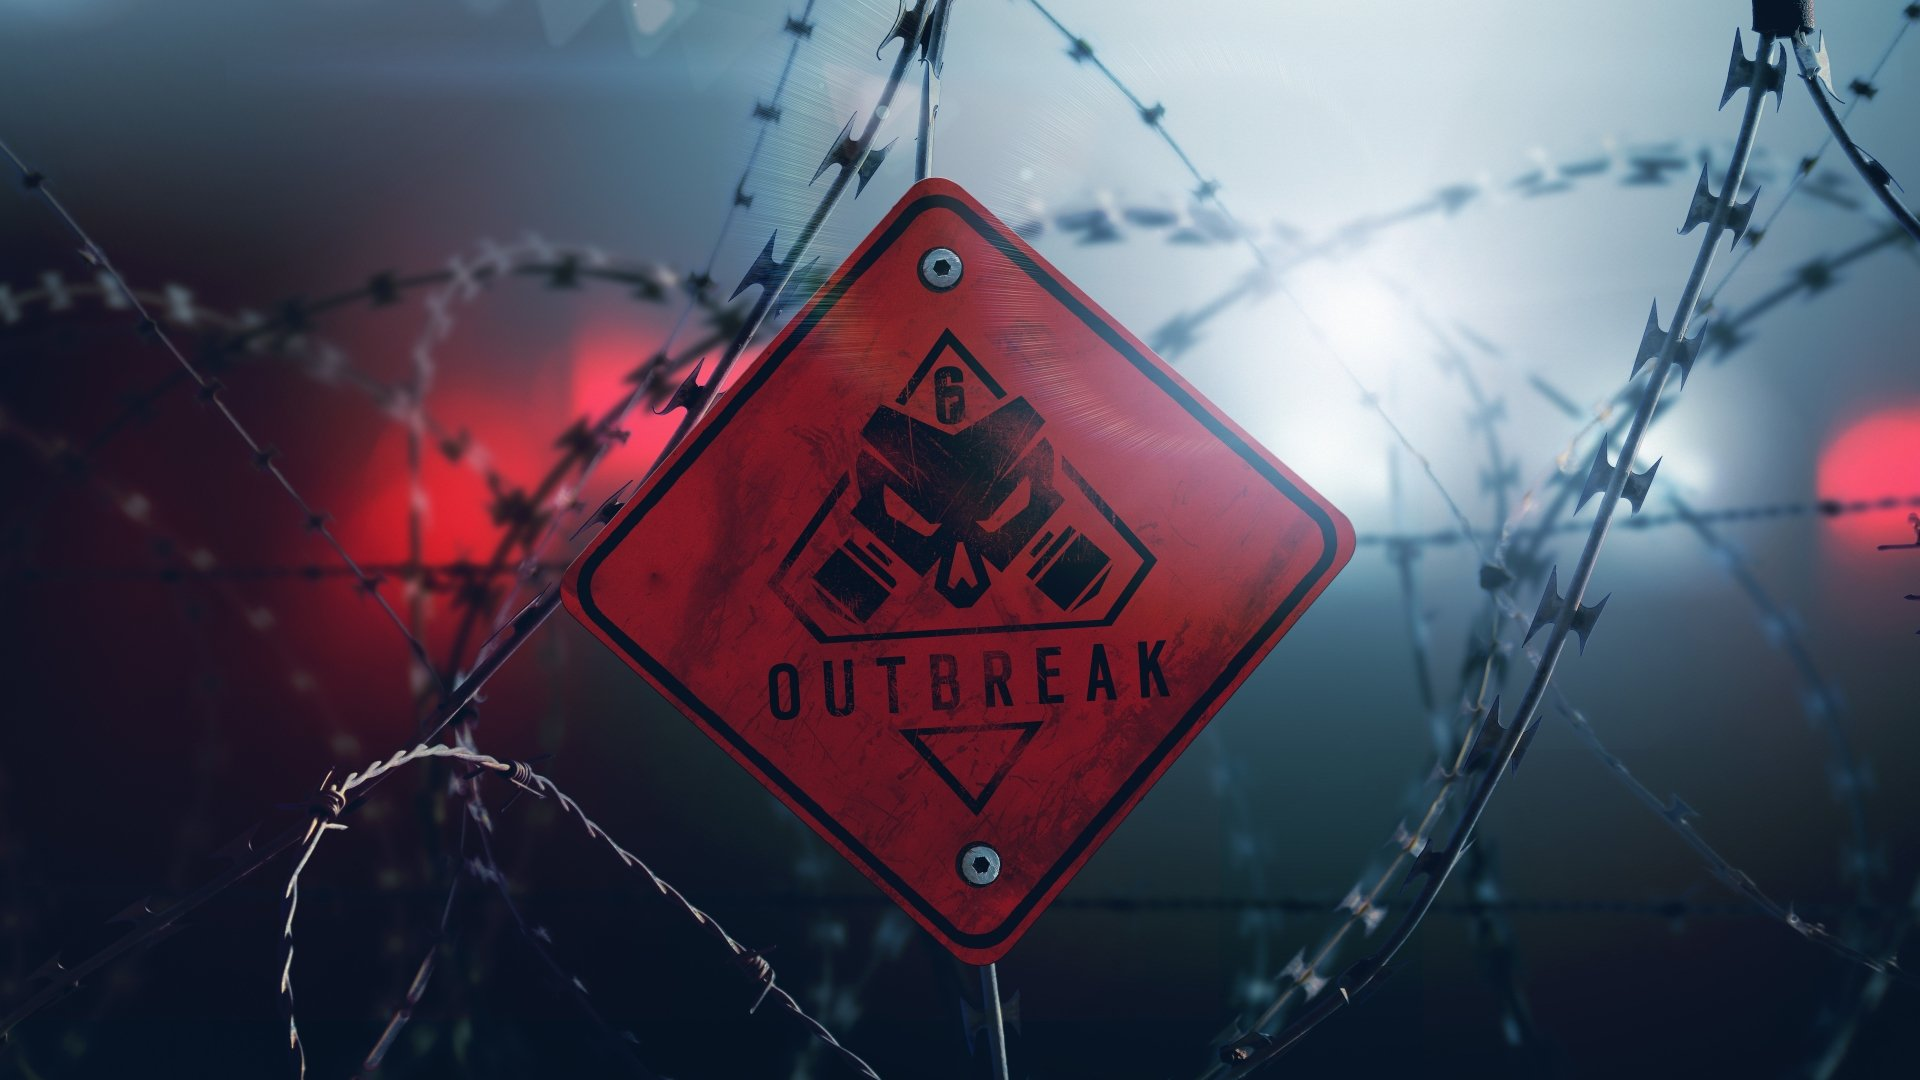 9 Outbreak Tom Clancy S Rainbow Six Siege Hd Wallpapers